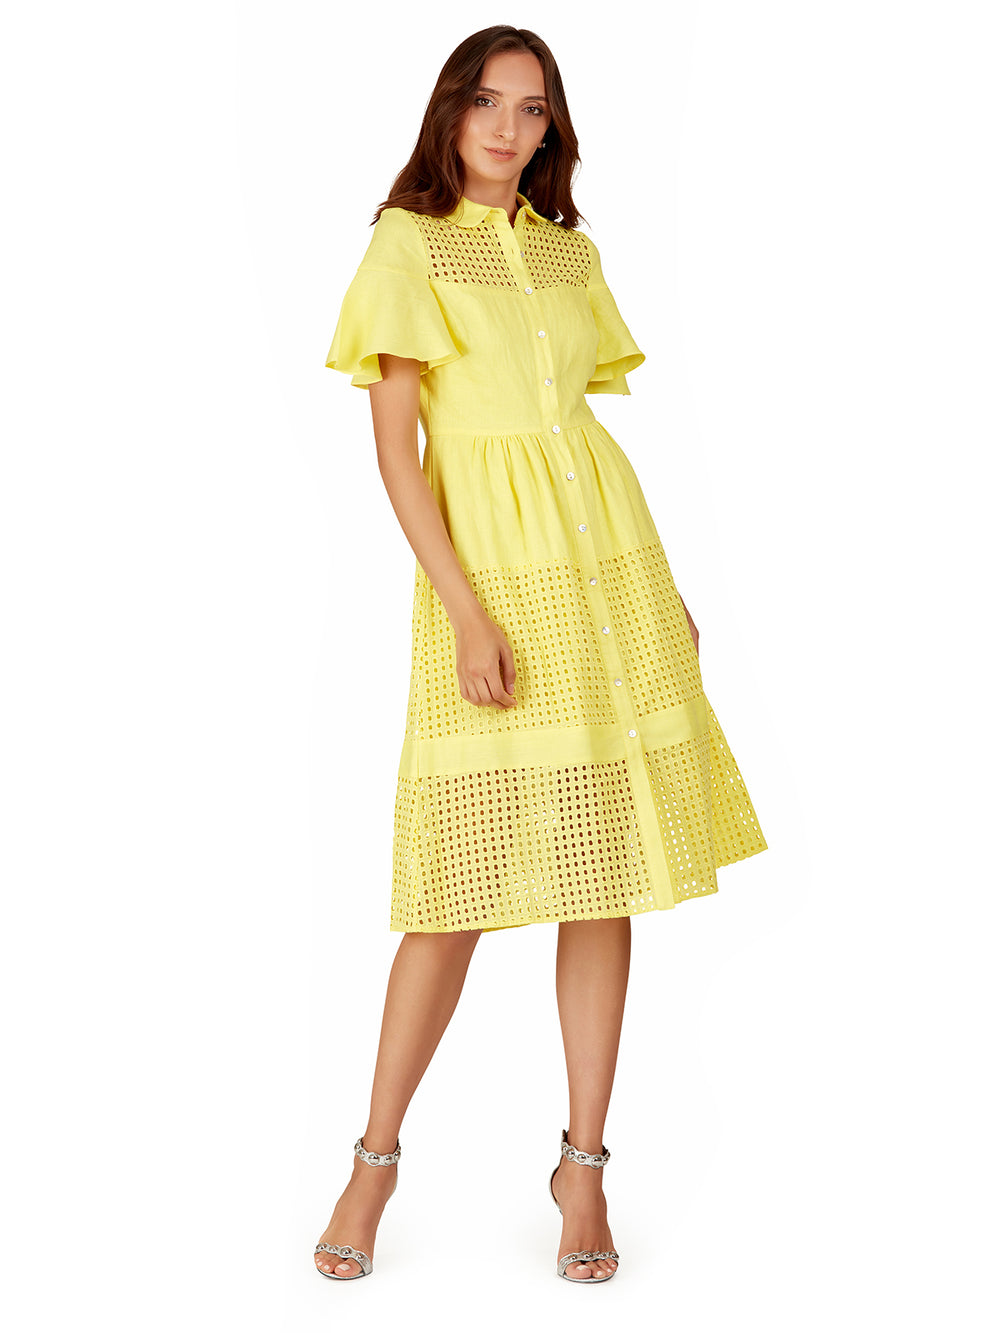 Canary Midi Dress, BELLE BADGLEY MISCHKA - elilhaam.com